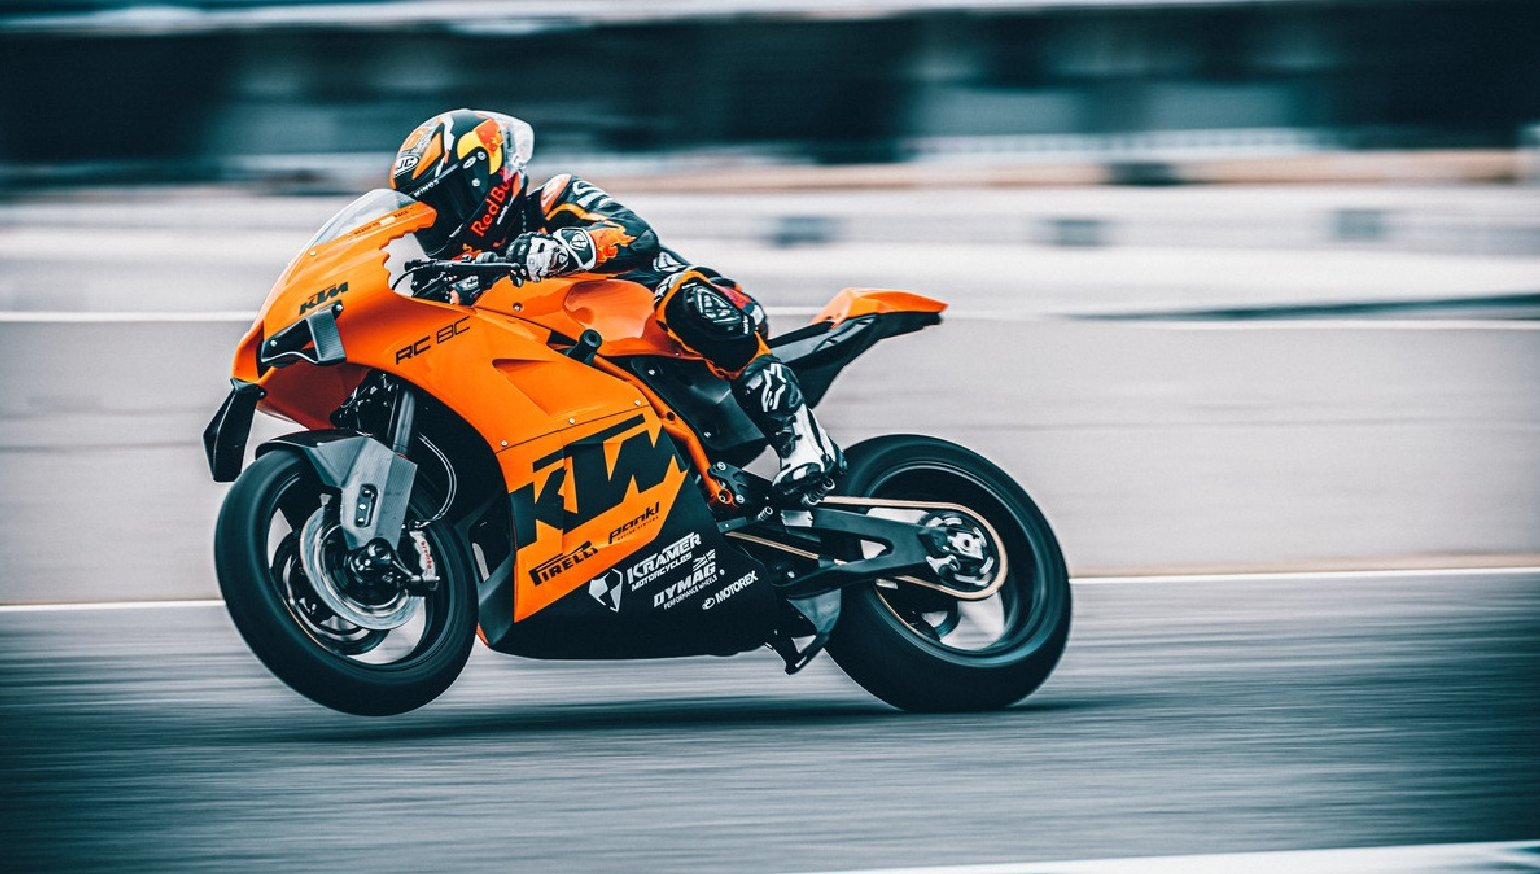 KTM offers its idea of the ideal track-day bike, in very limited numbers